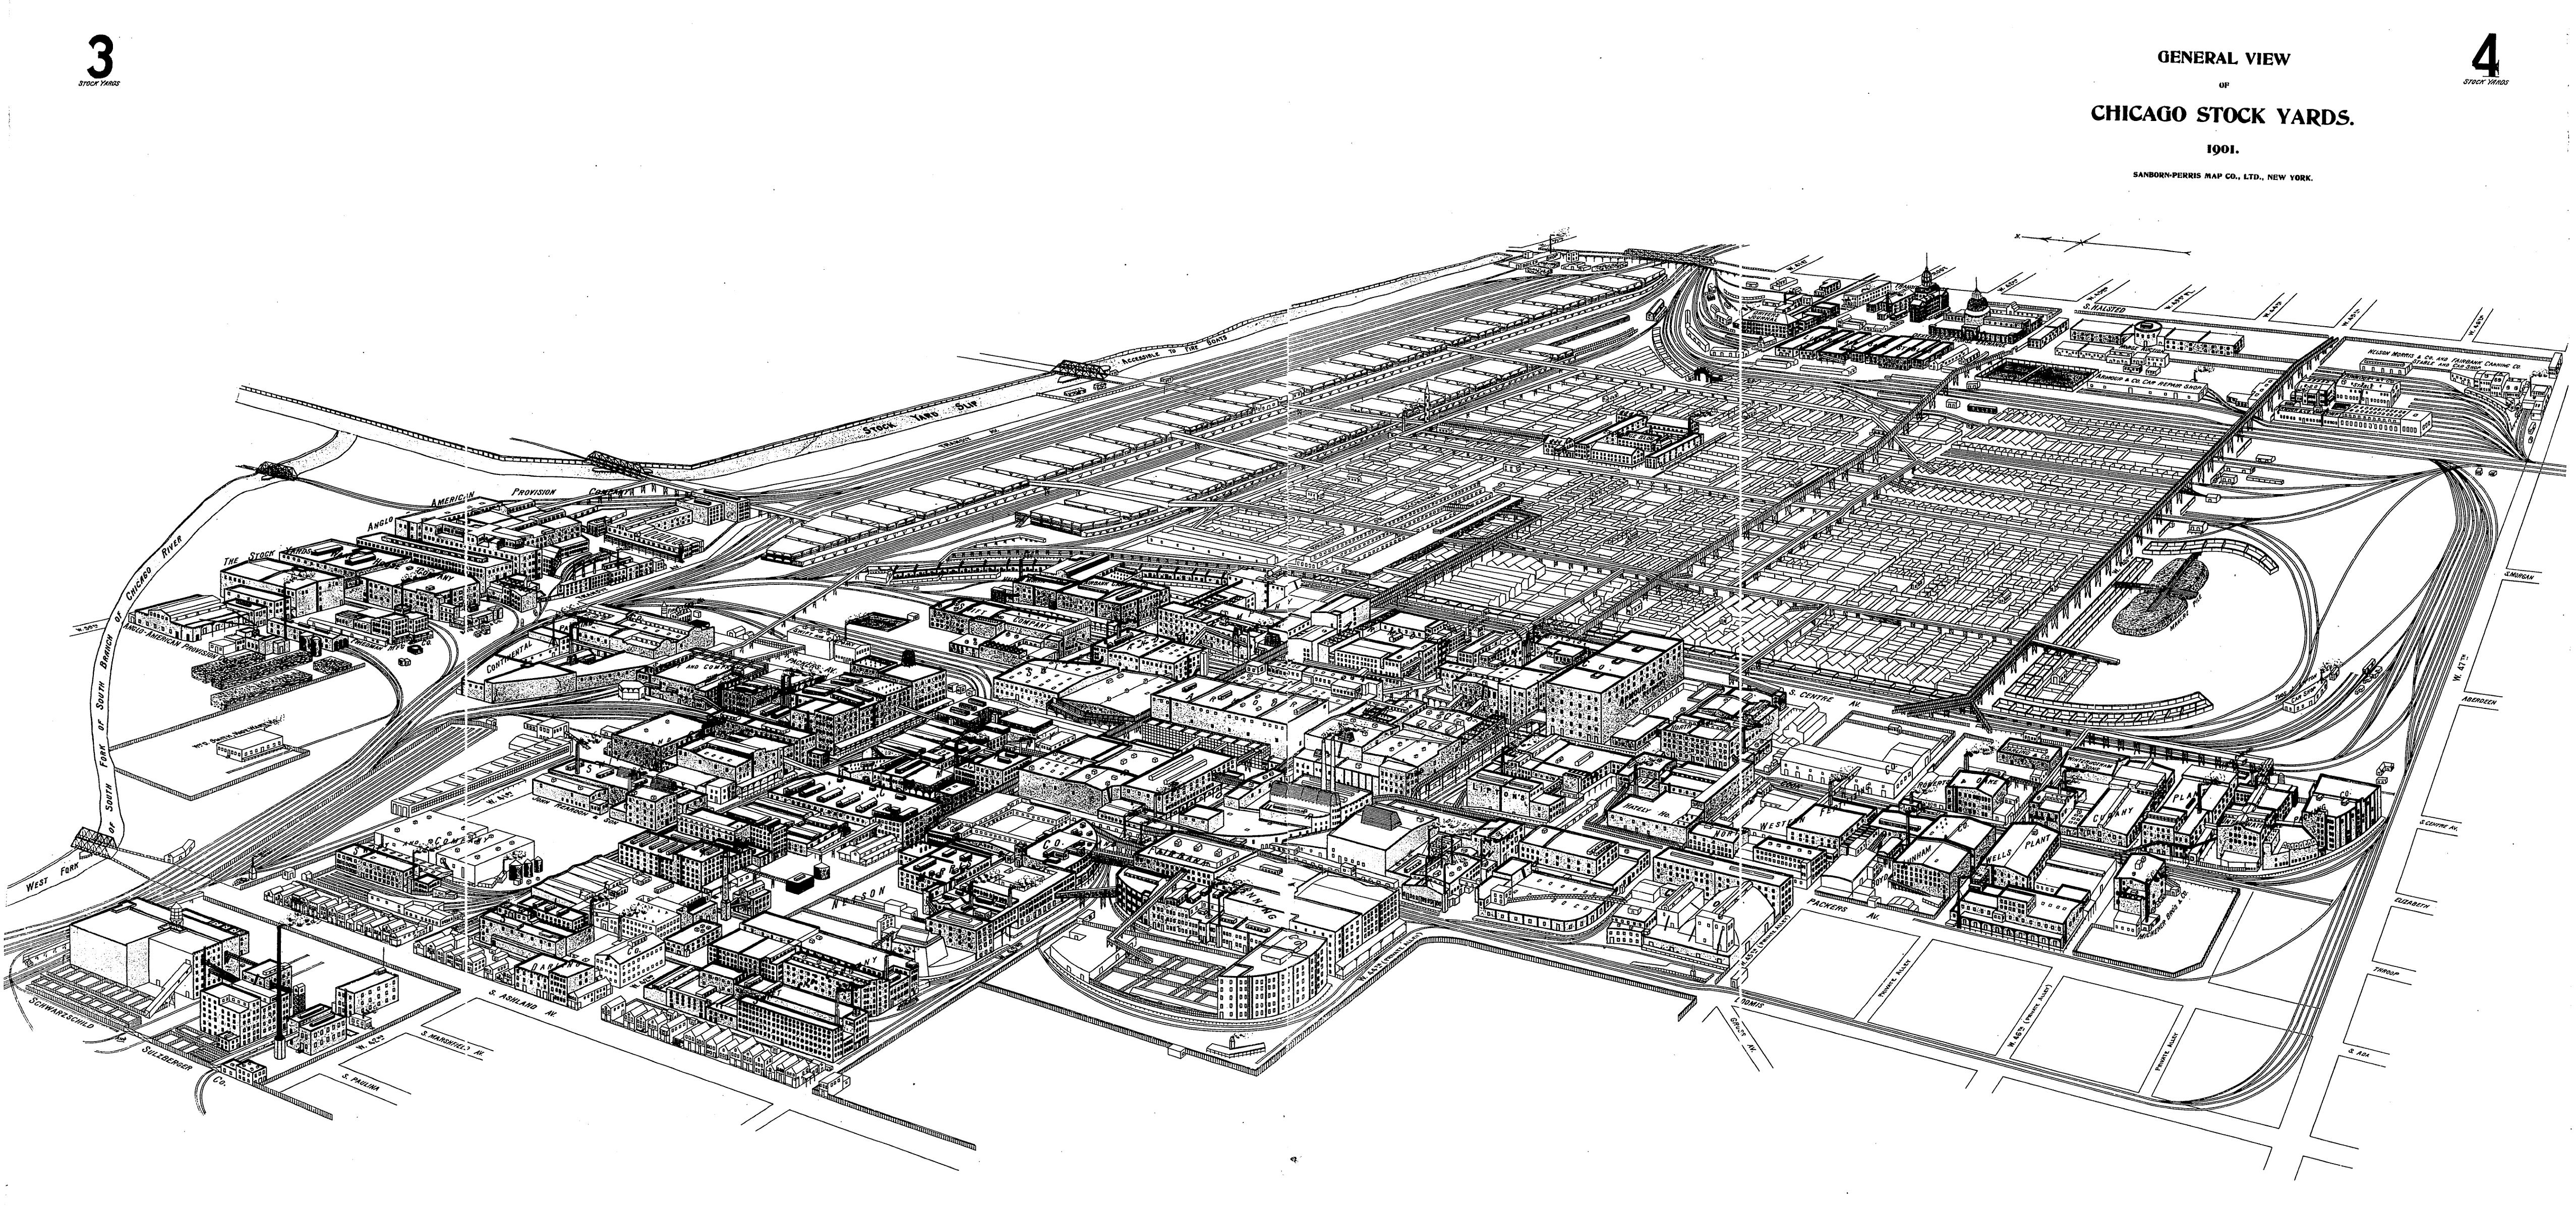 FileChicago Stockyards  Sanborn General View Combined - Chicago union map